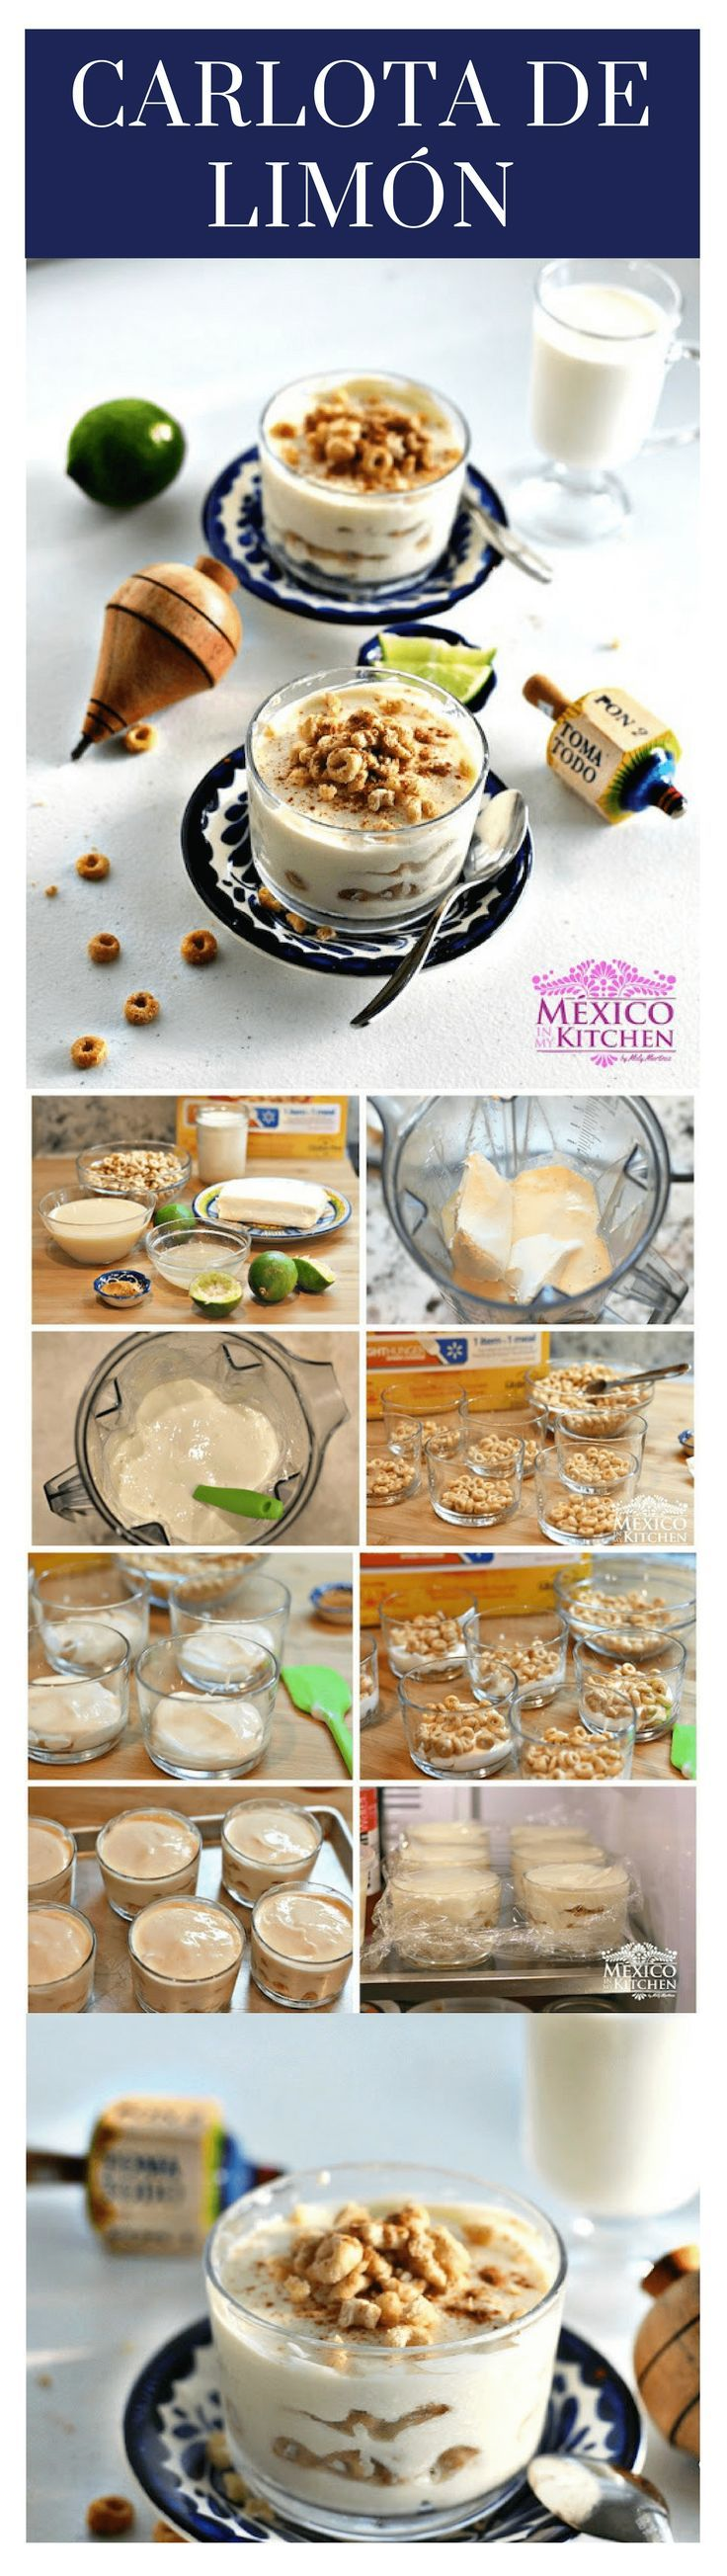 Carlota de limón │ (Lime Charlotte) is a Mexican home-style dessert. It's made with layers of cookies and a creamy mix made out of canned milk and lime juice. #mexicanrecipes #carlota #mexicancuisine #desserts